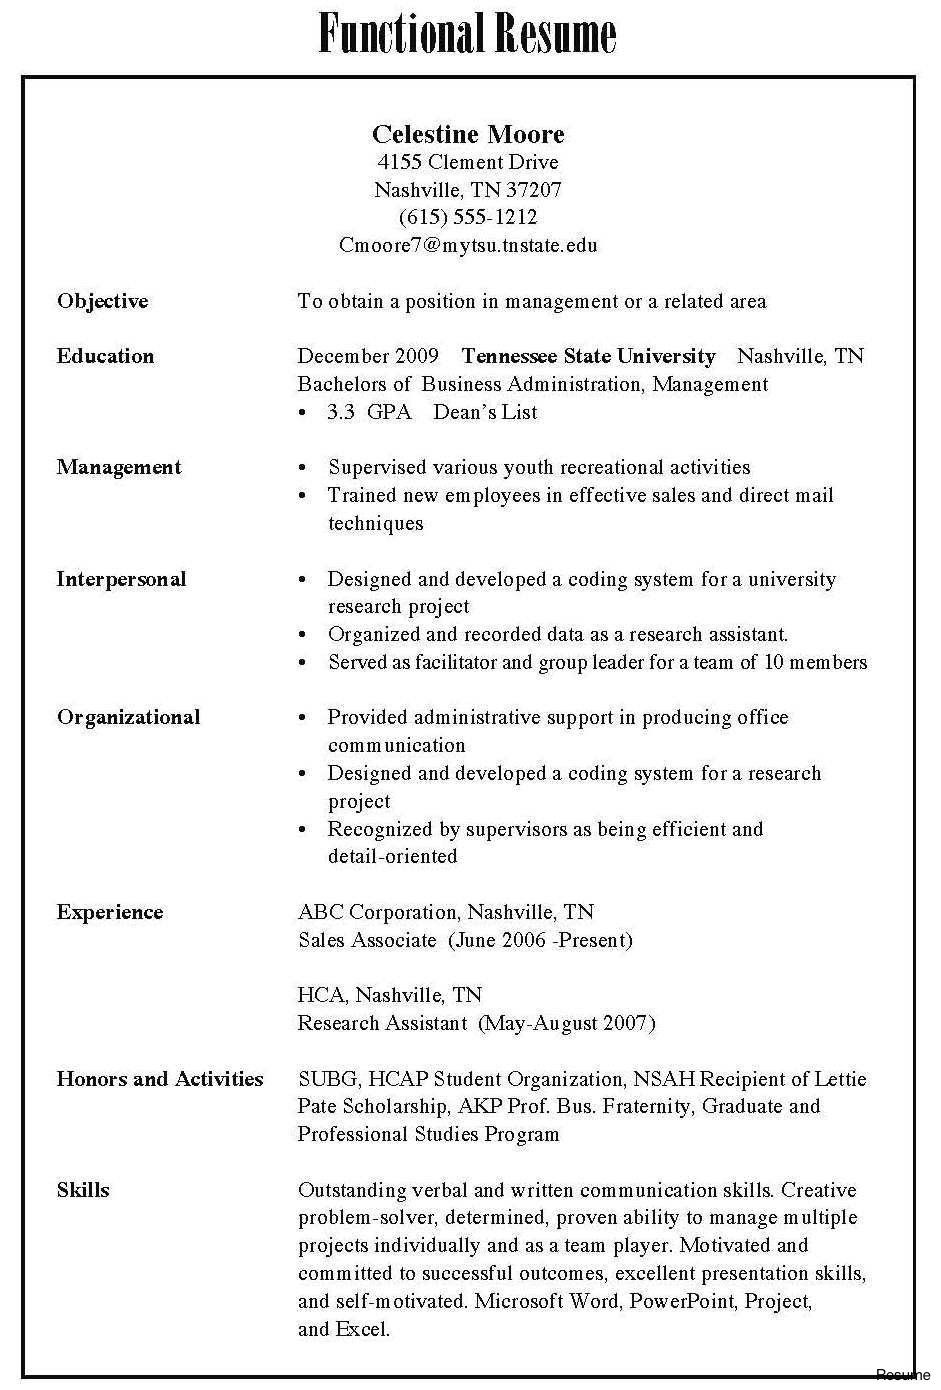 3 Types Of Resume Formats Types Of Resumes Basic Resume Resume